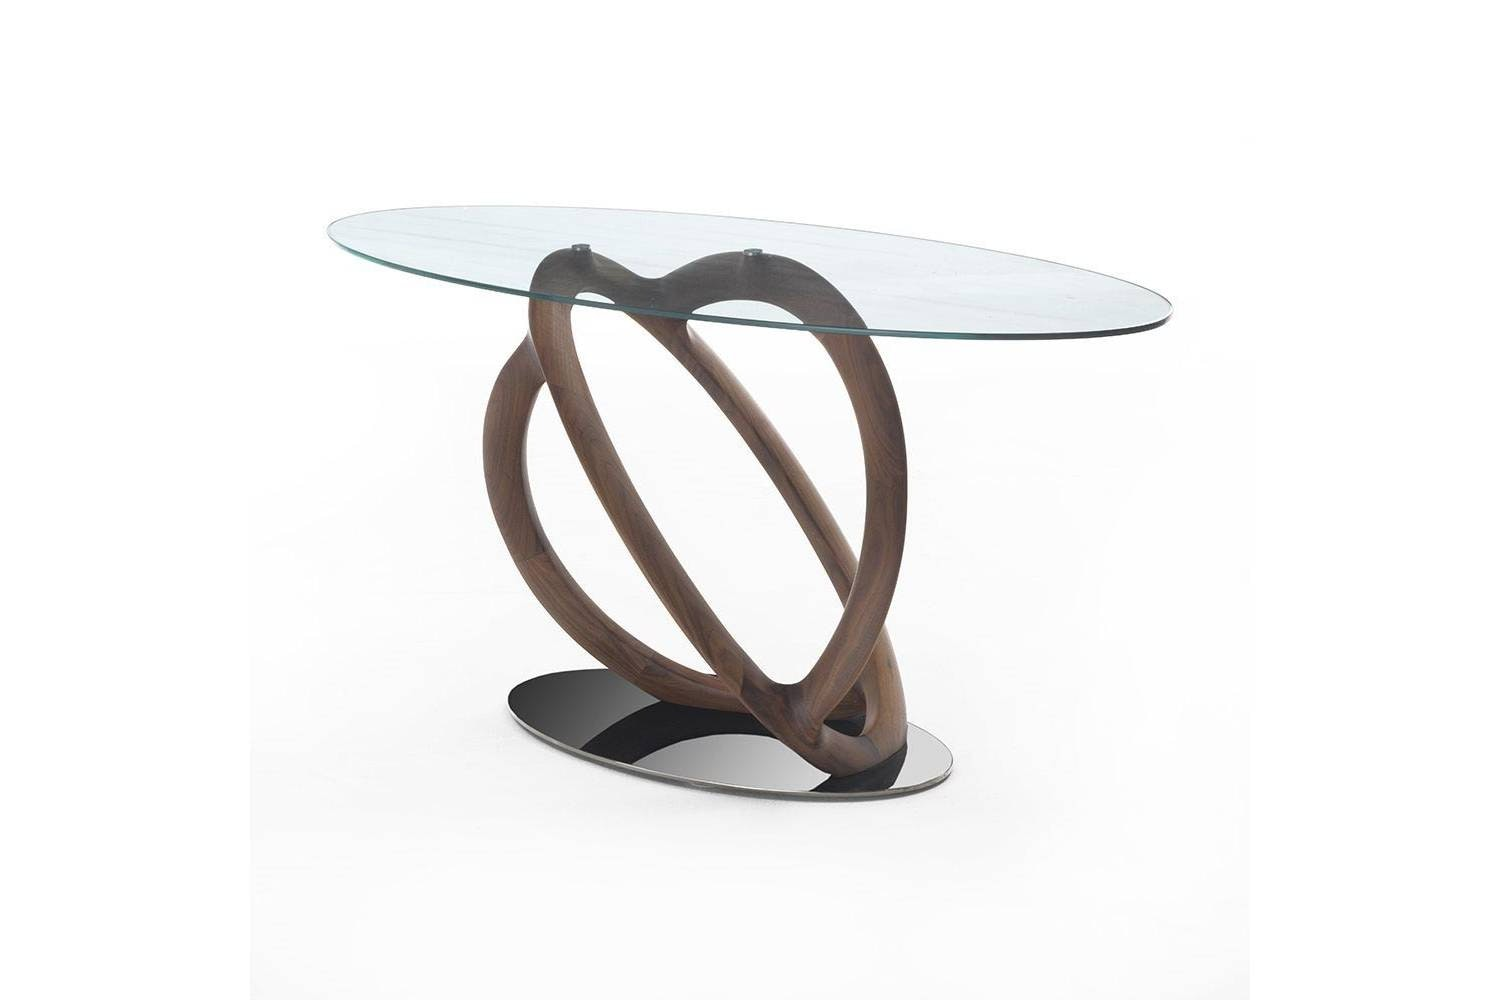 Kosmo Console Table by C. Ballabio for Porada